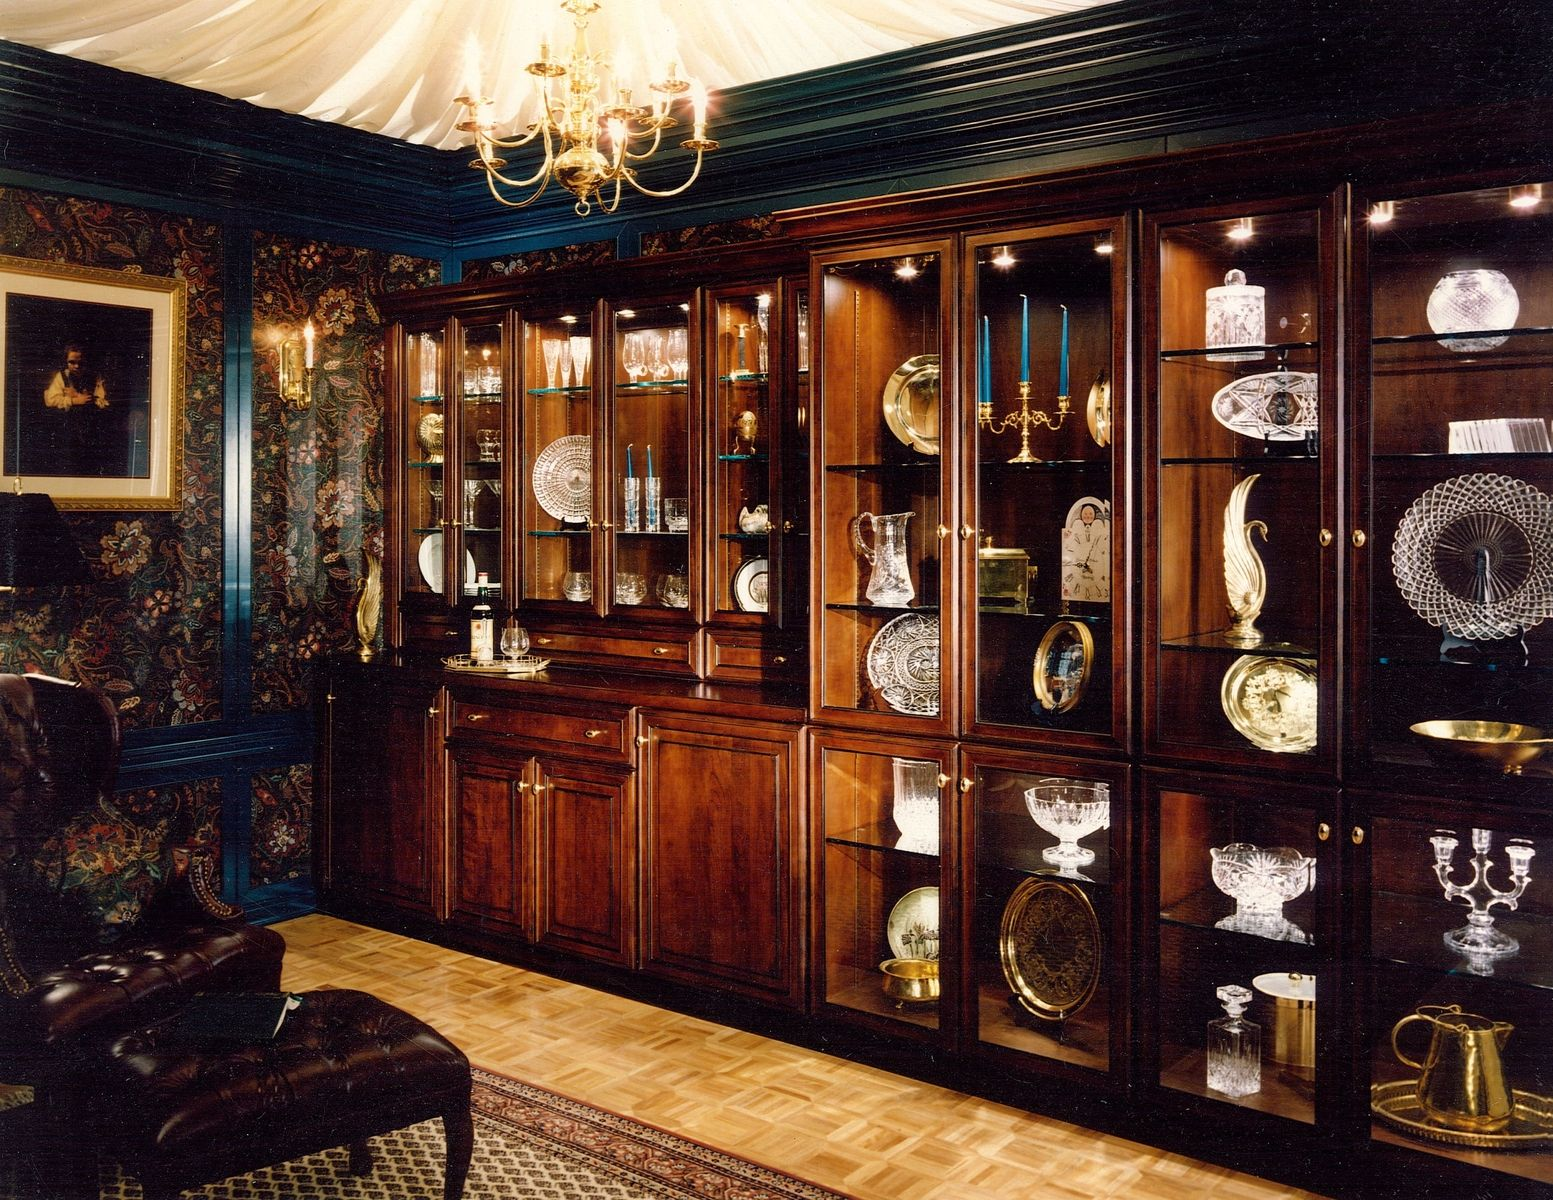 Built In Cabinetry For Home China Display Library